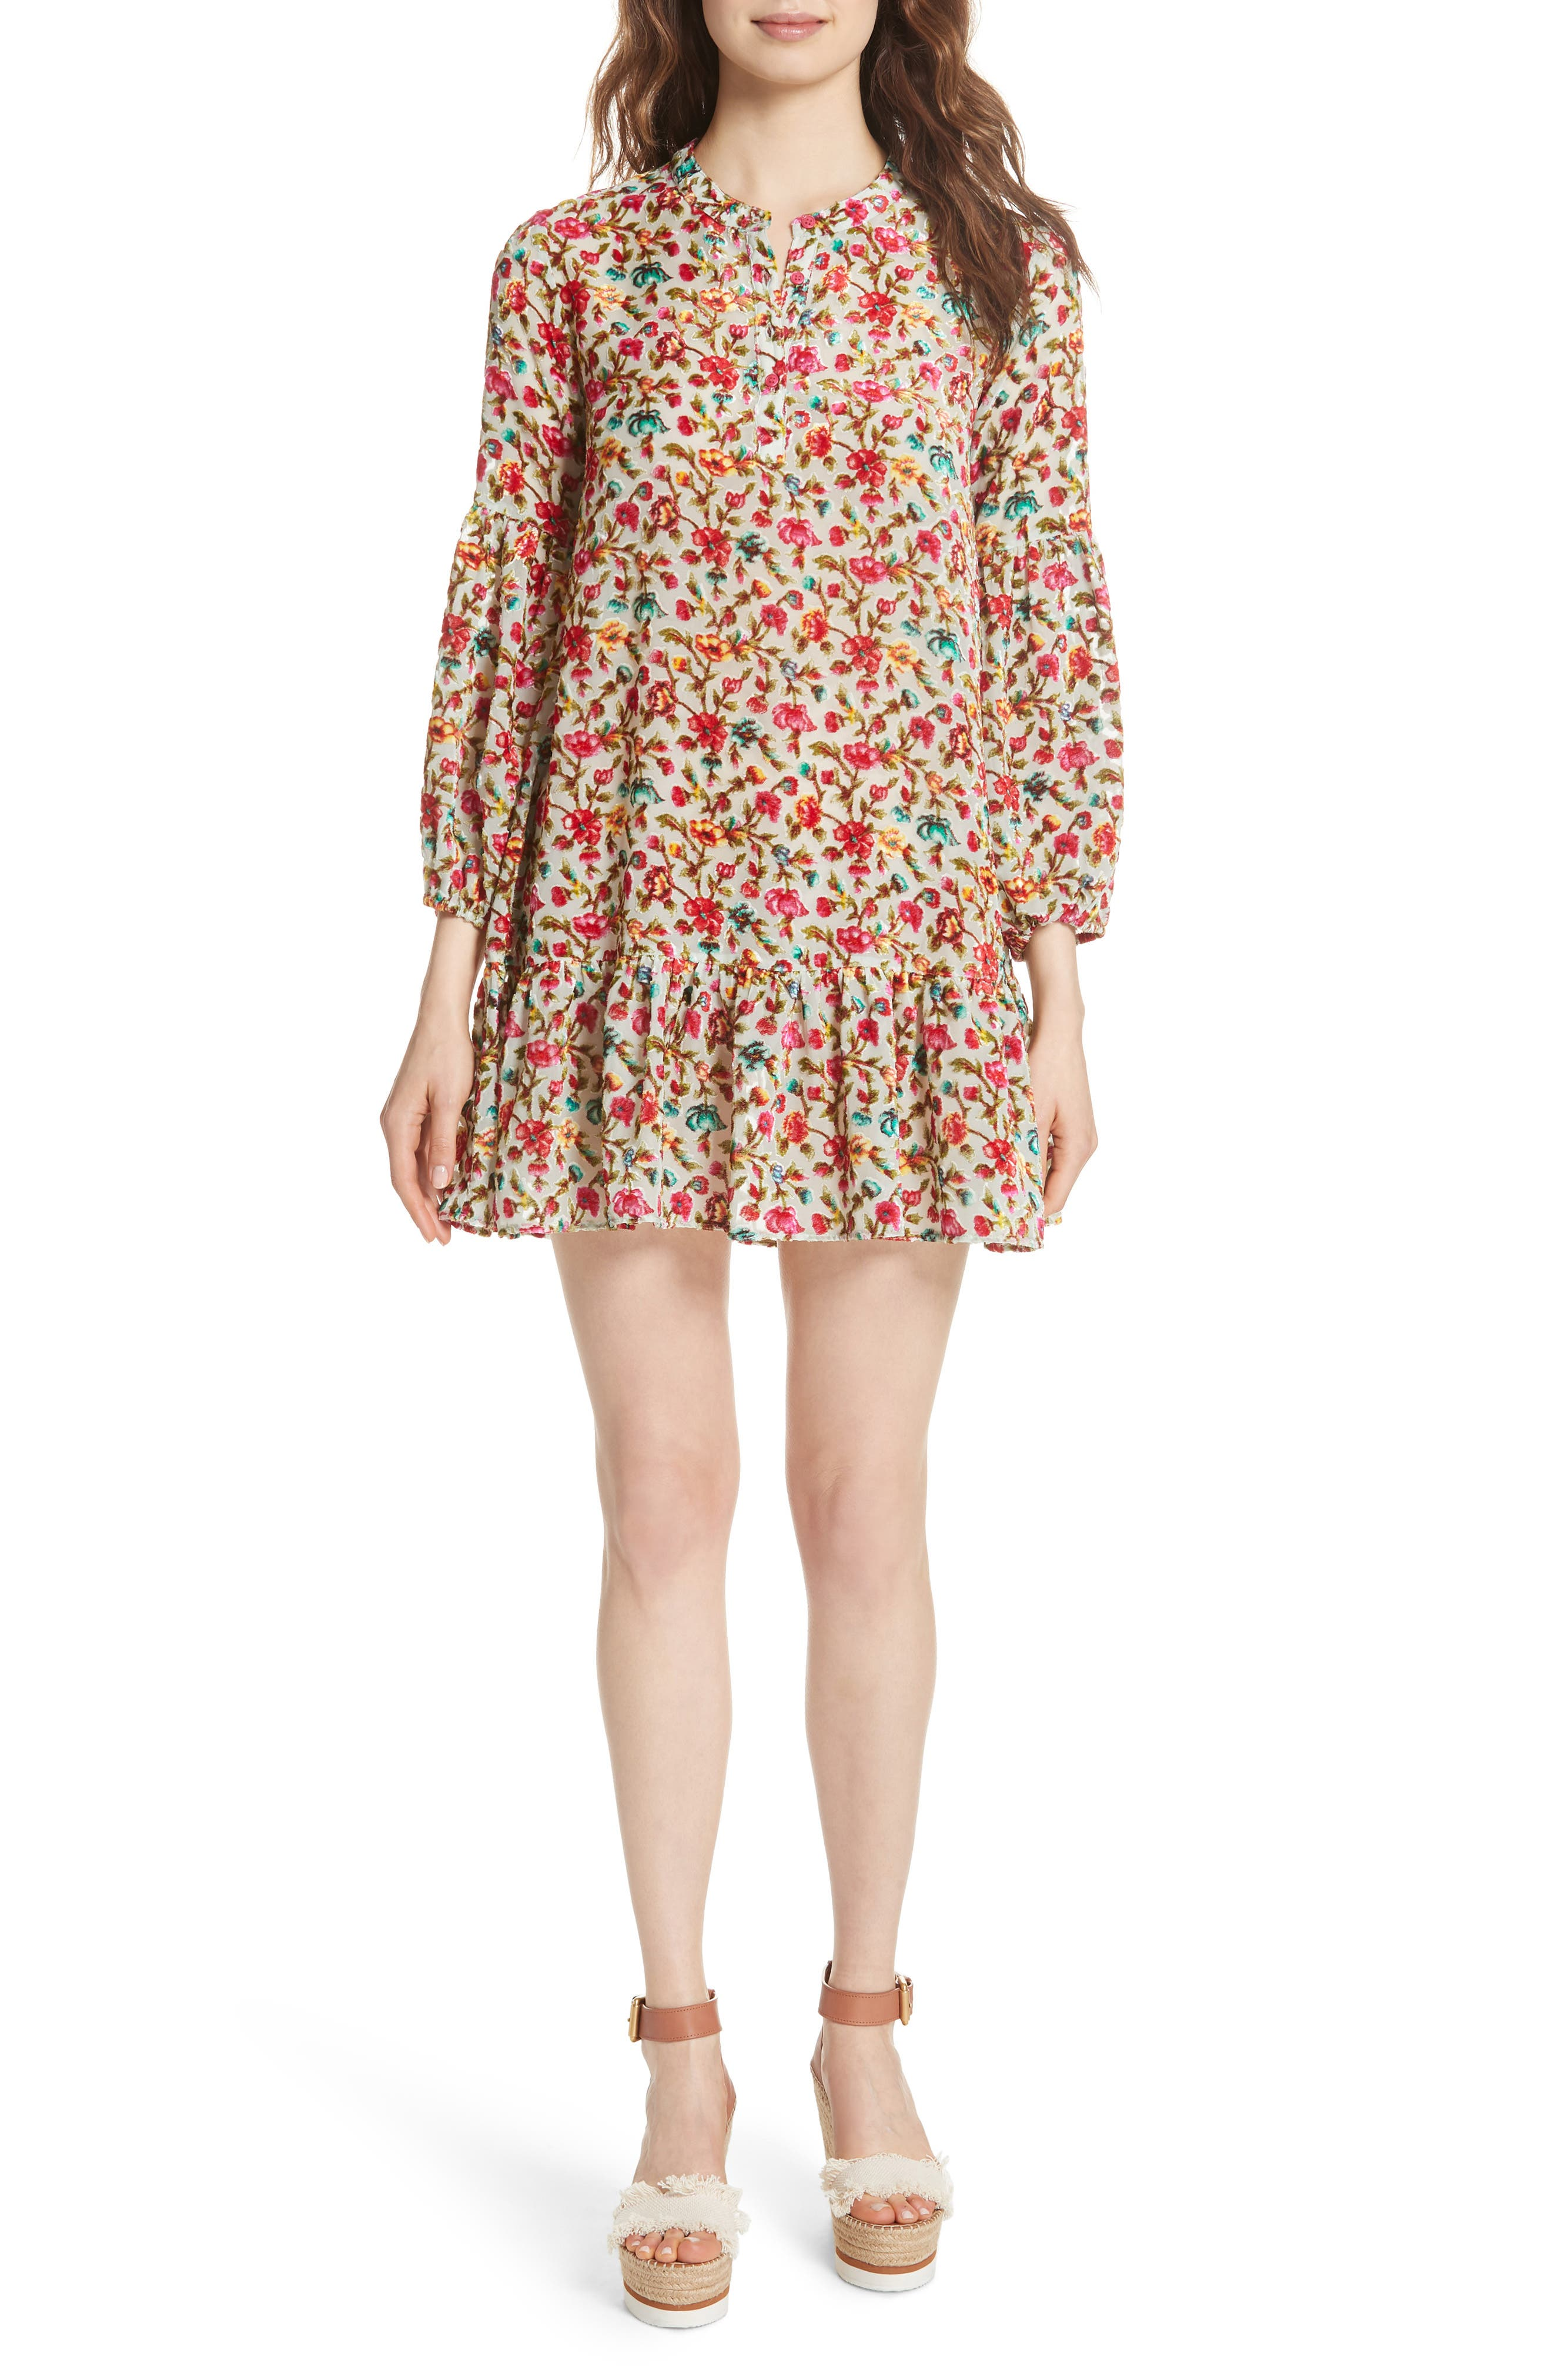 Simpson Printed Dress,                         Main,                         color, Multicolor